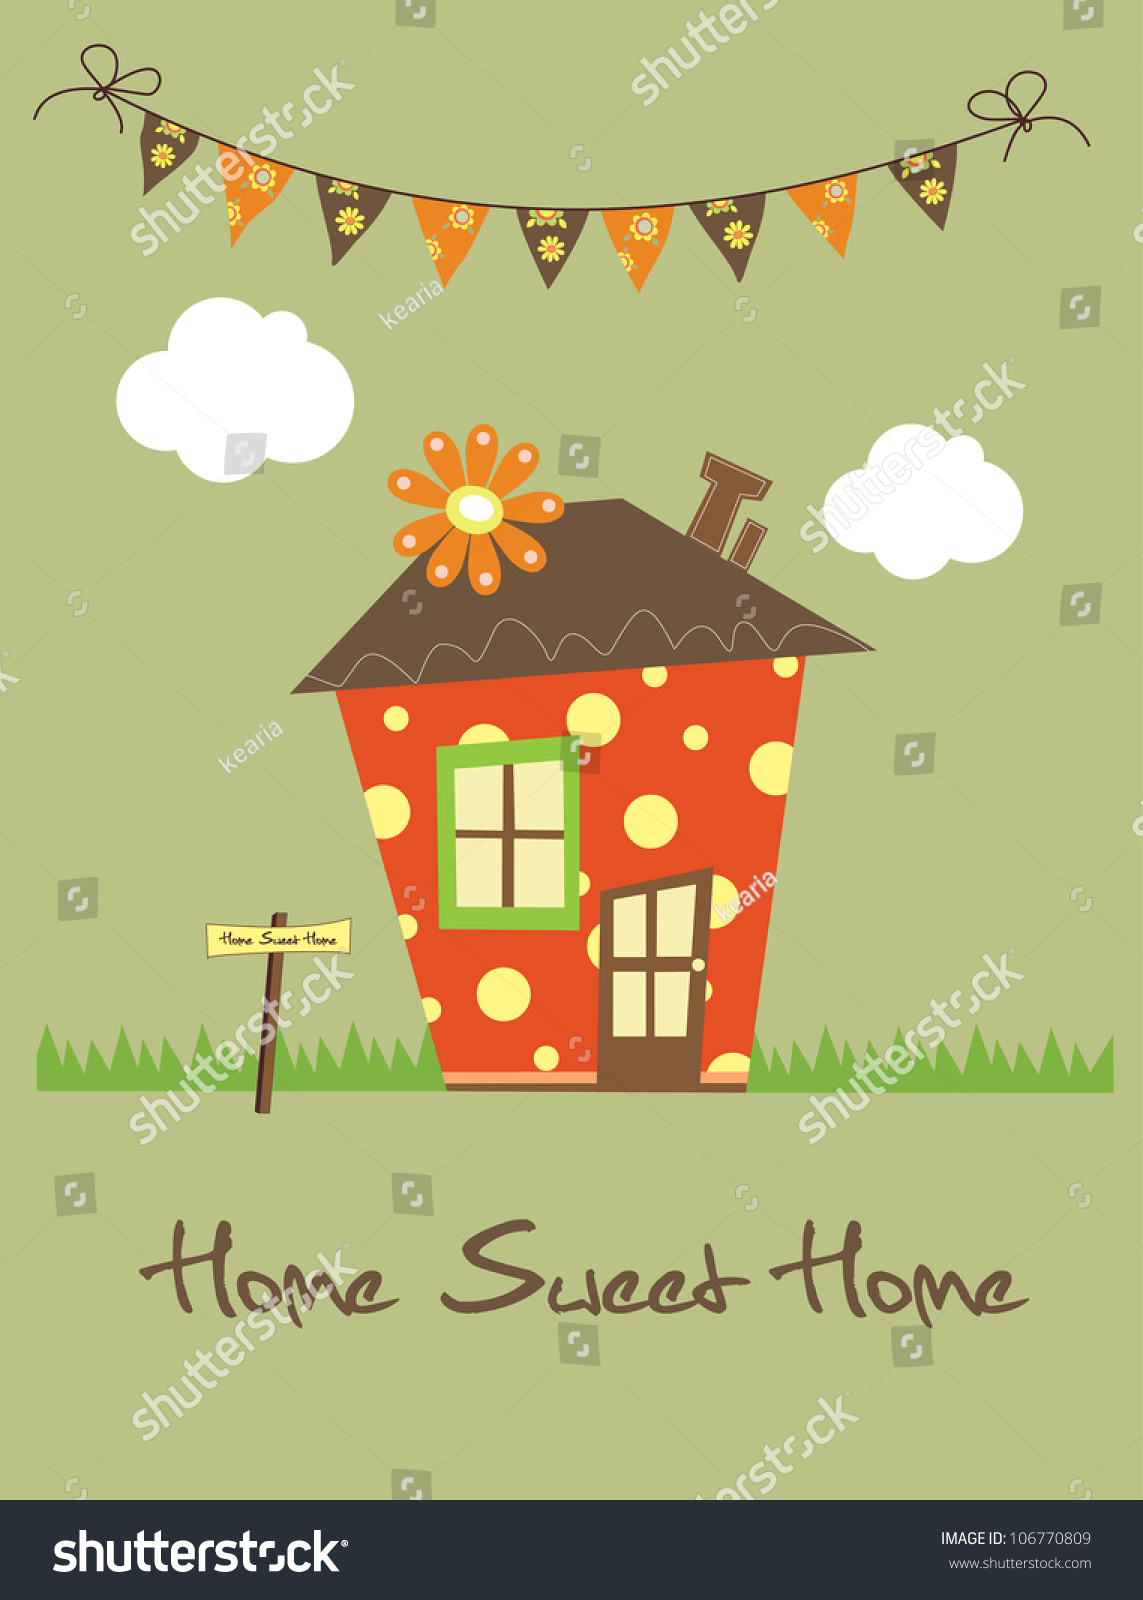 home sweet home vector illustration stock vector 106770809 shutterstock. Black Bedroom Furniture Sets. Home Design Ideas